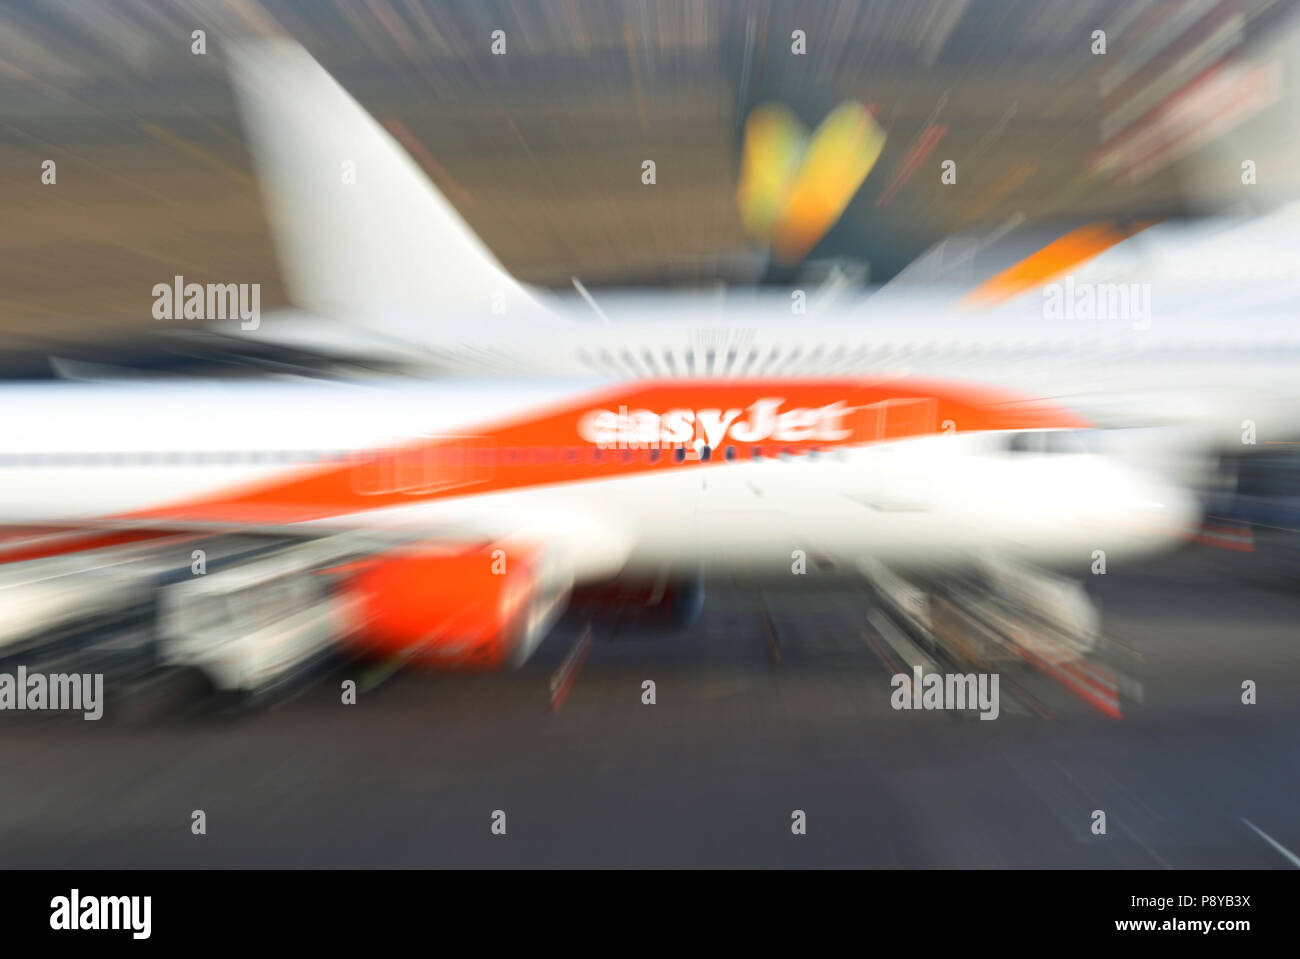 Berlin, Germany, Dynamik, Airbus A320 of the airline easyJet on the apron of the airport Berlin-Tegel - Stock Image